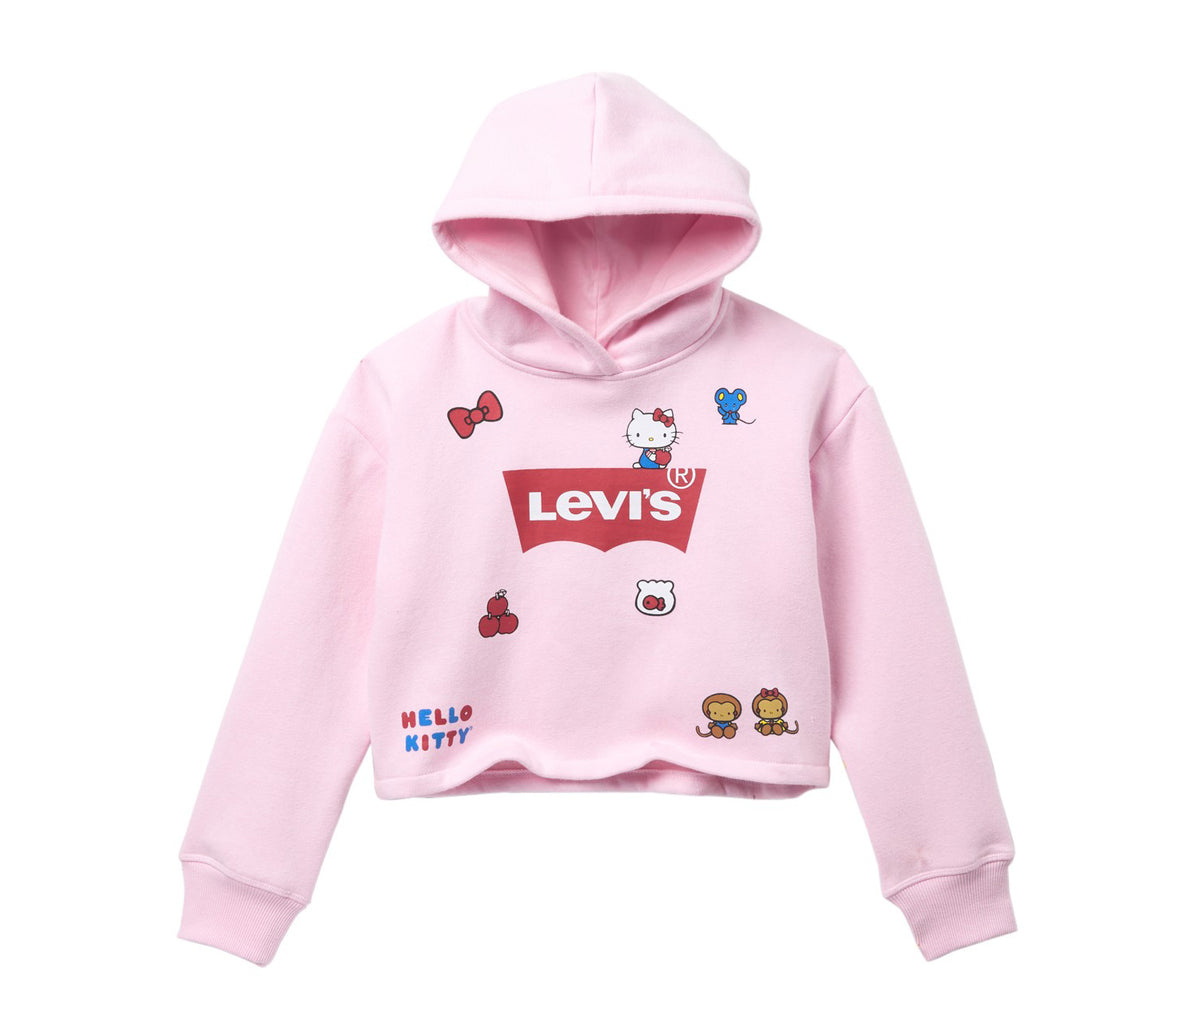 Levi's x Hello Kitty Girls Hoodie: Pink